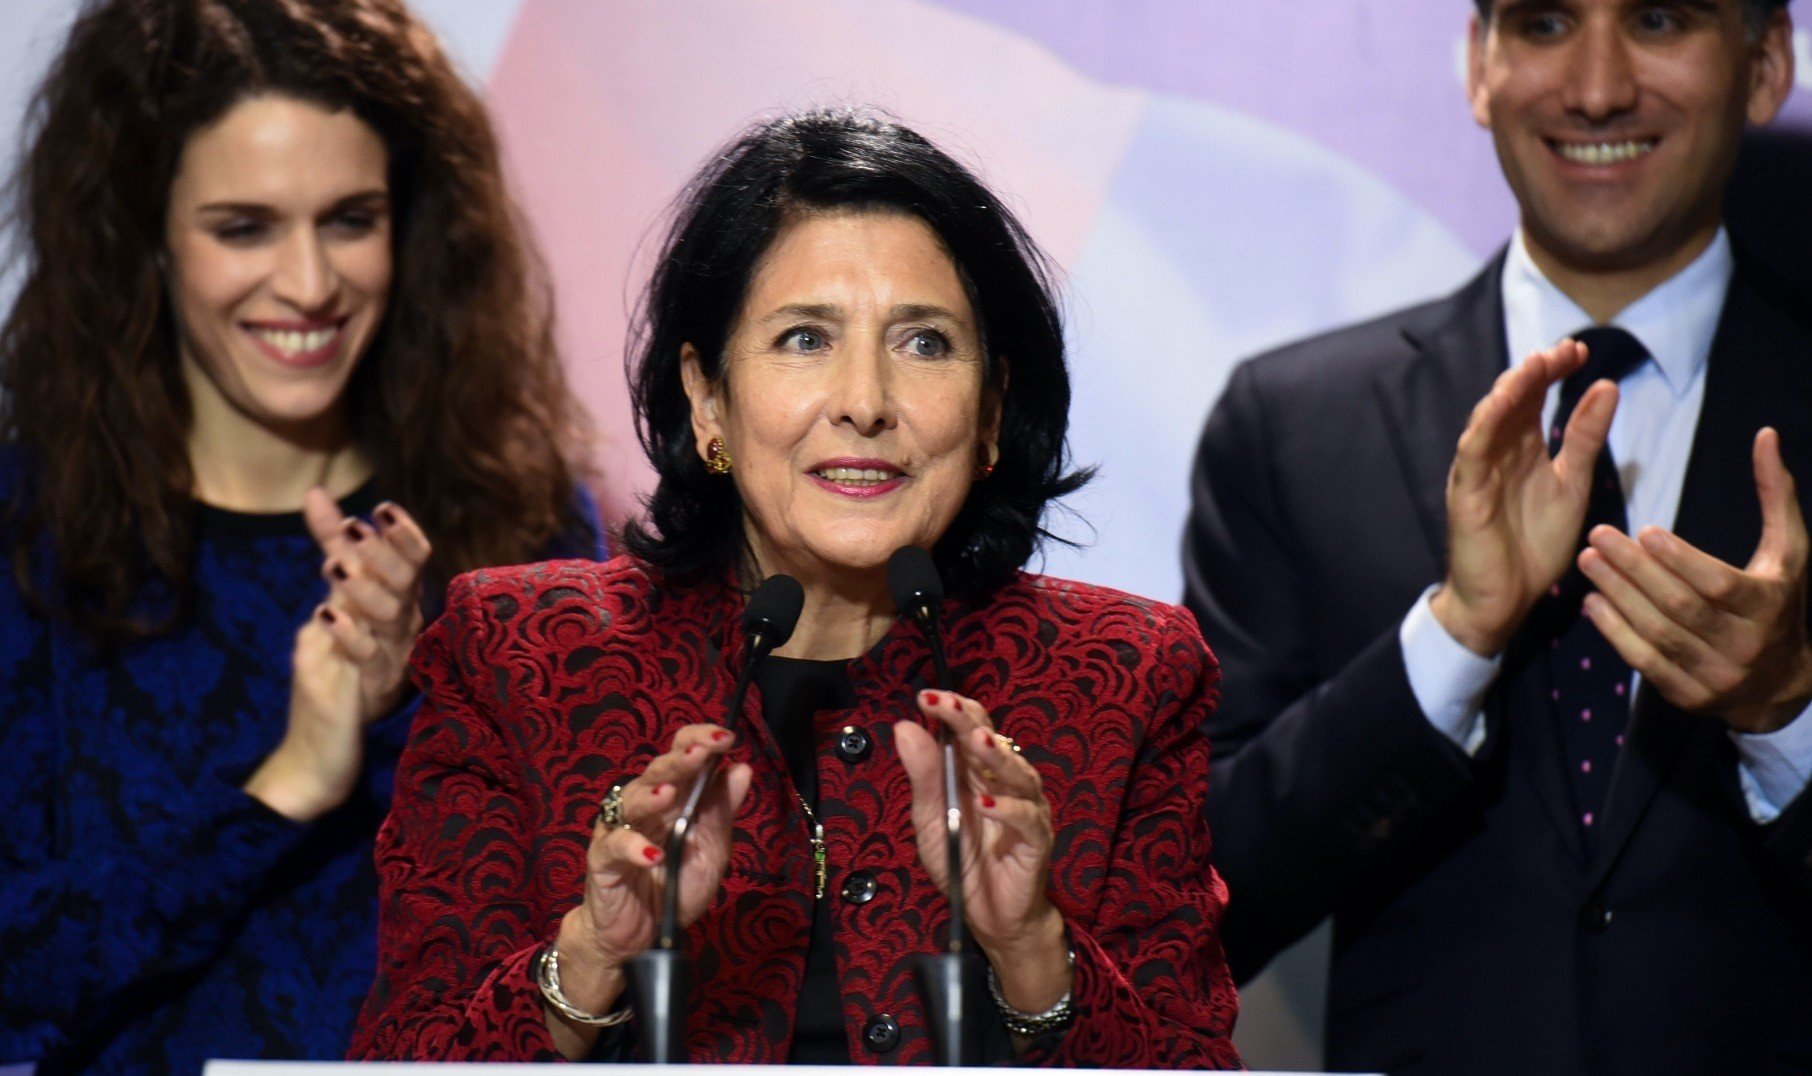 Before being elected Georgiau2019s first female president Salome Zurabishvili, addresses the media in Tbilisi during her election campaign, Nov. 28, 2018.